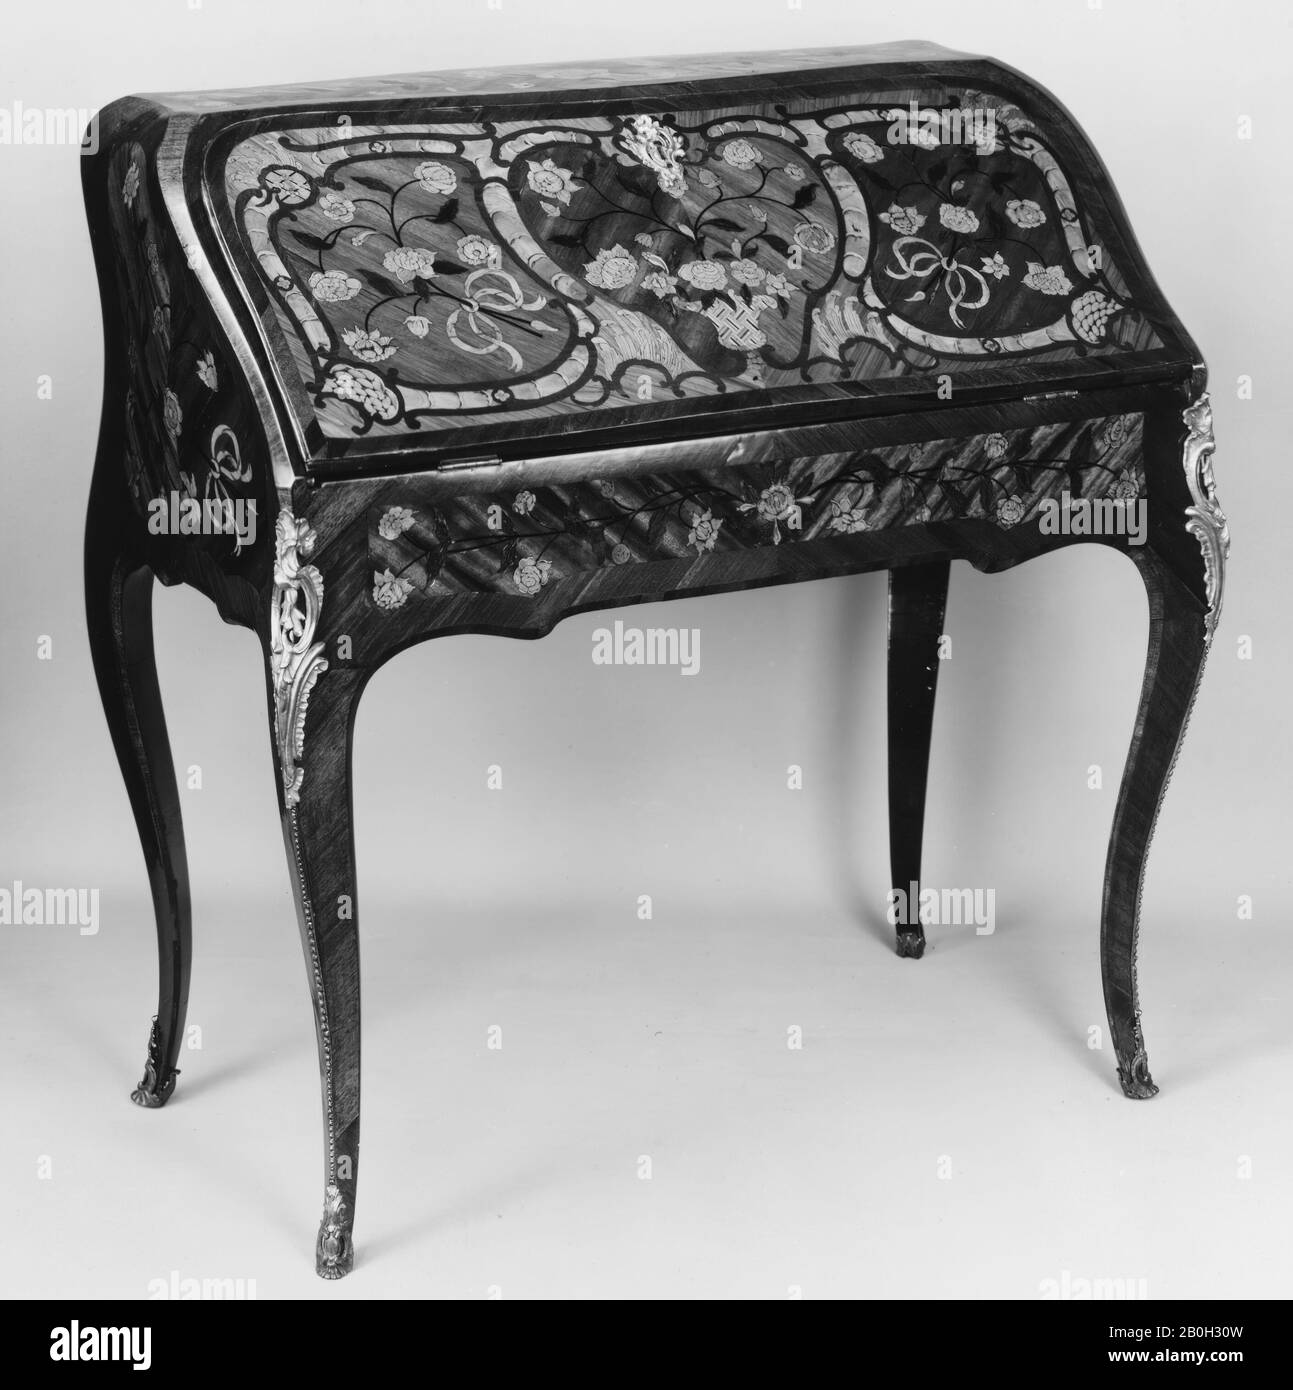 Picture of: Jean Baptiste I Tuart Slant Top Desk French Jean Baptiste I Tuart Ca 1700 Ca 1767 Master 1741 Mid 18th Century French Tulipwood Satine Satinwood Kingwood And Green Stained Wood Leather 38 36 1 2 20 In